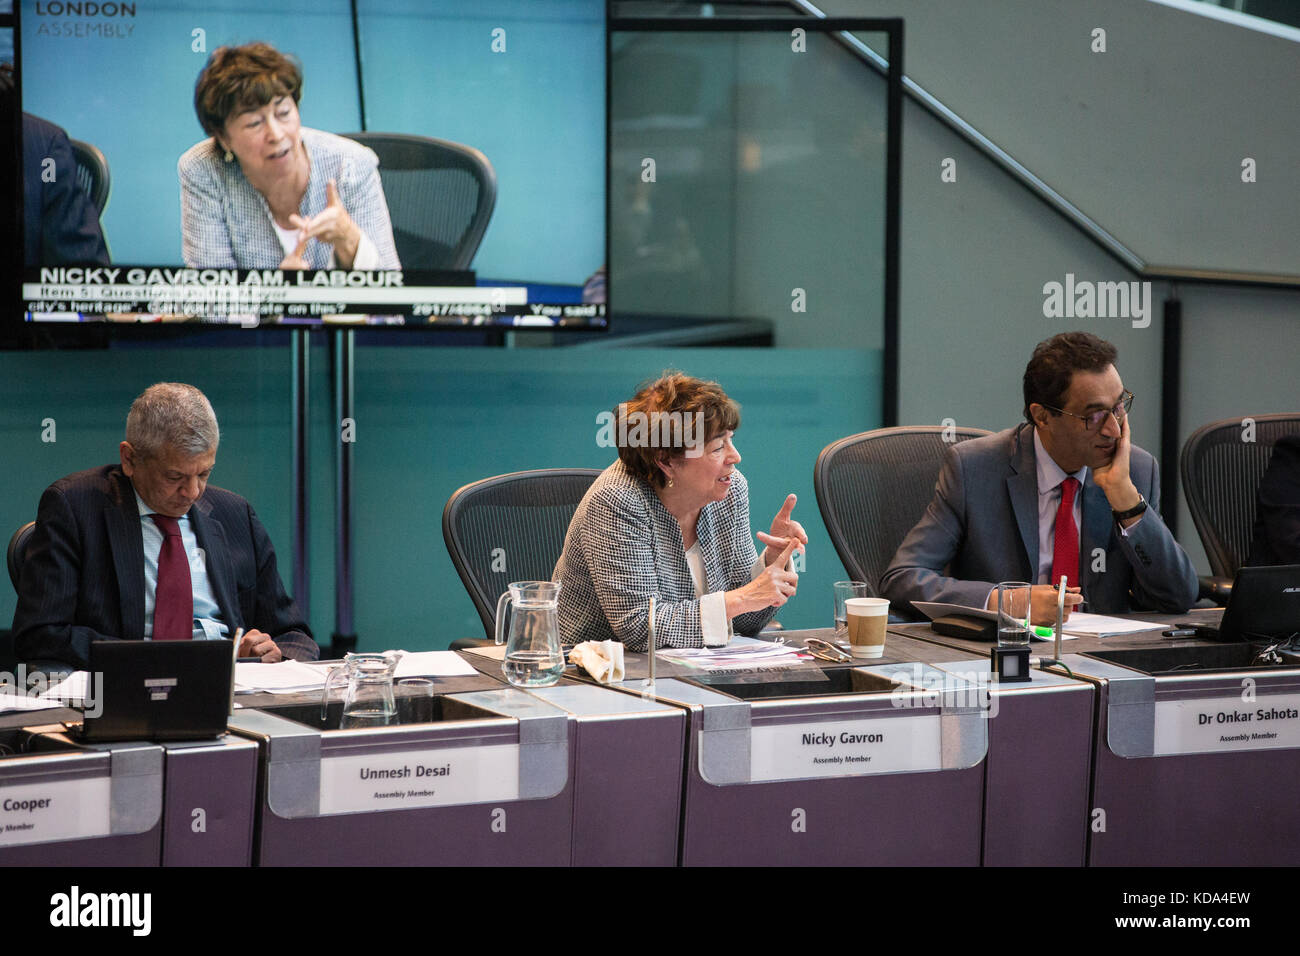 London, UK. 12th Oct, 2017. Nicky Gavron, Labour London Assembly Member, puts a question regarding London's - Stock Image